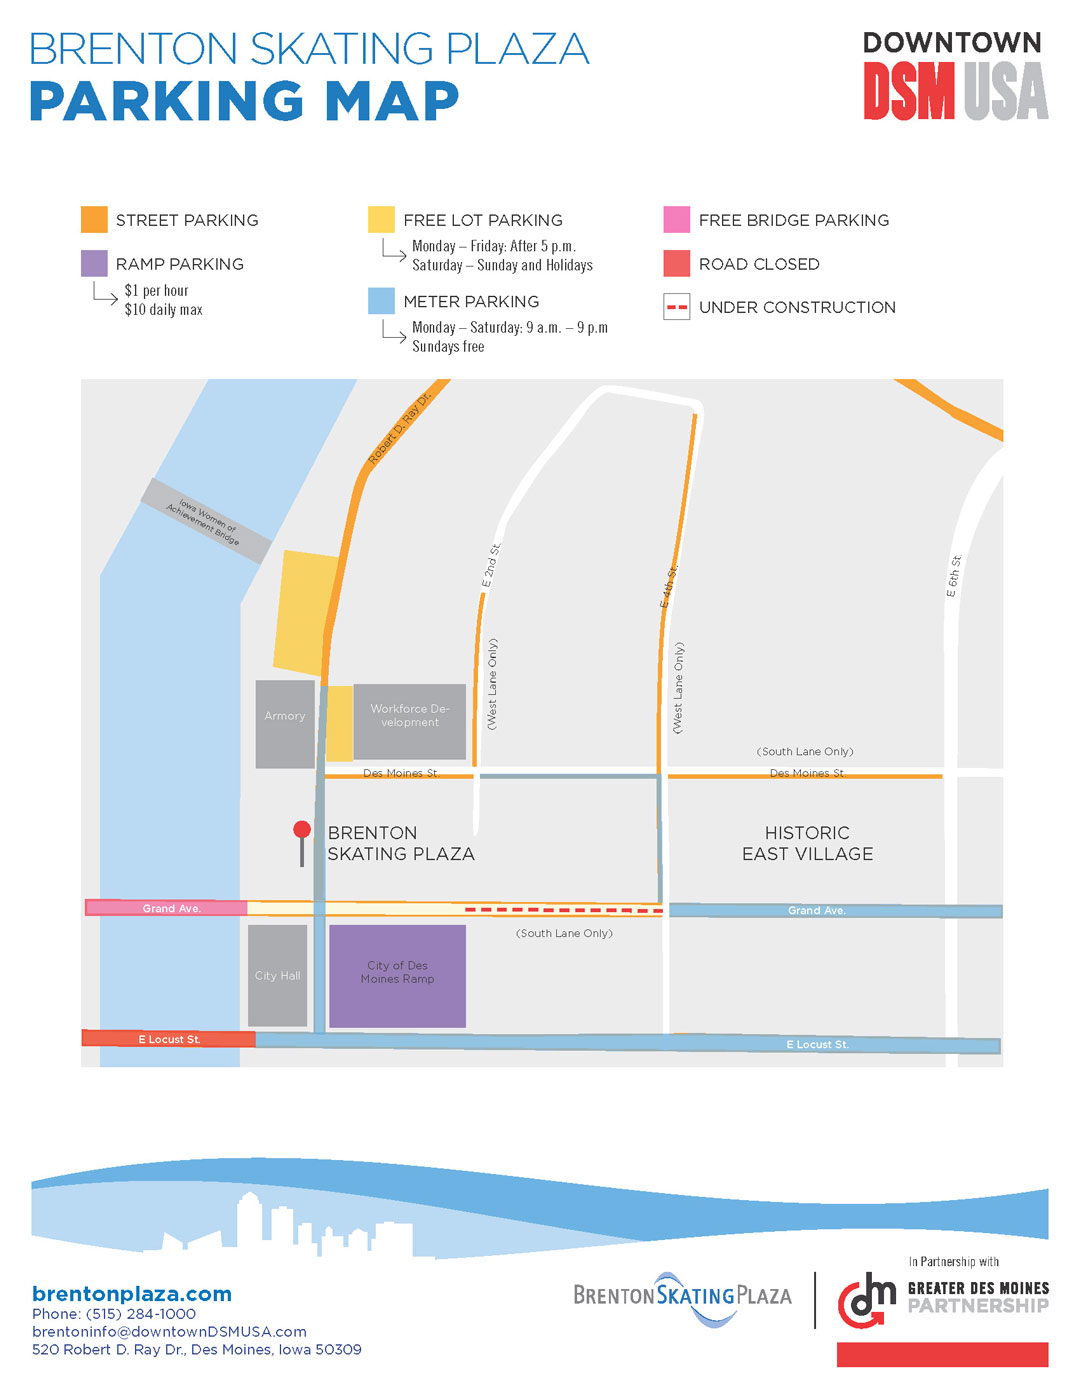 Brenton Plaza parking map